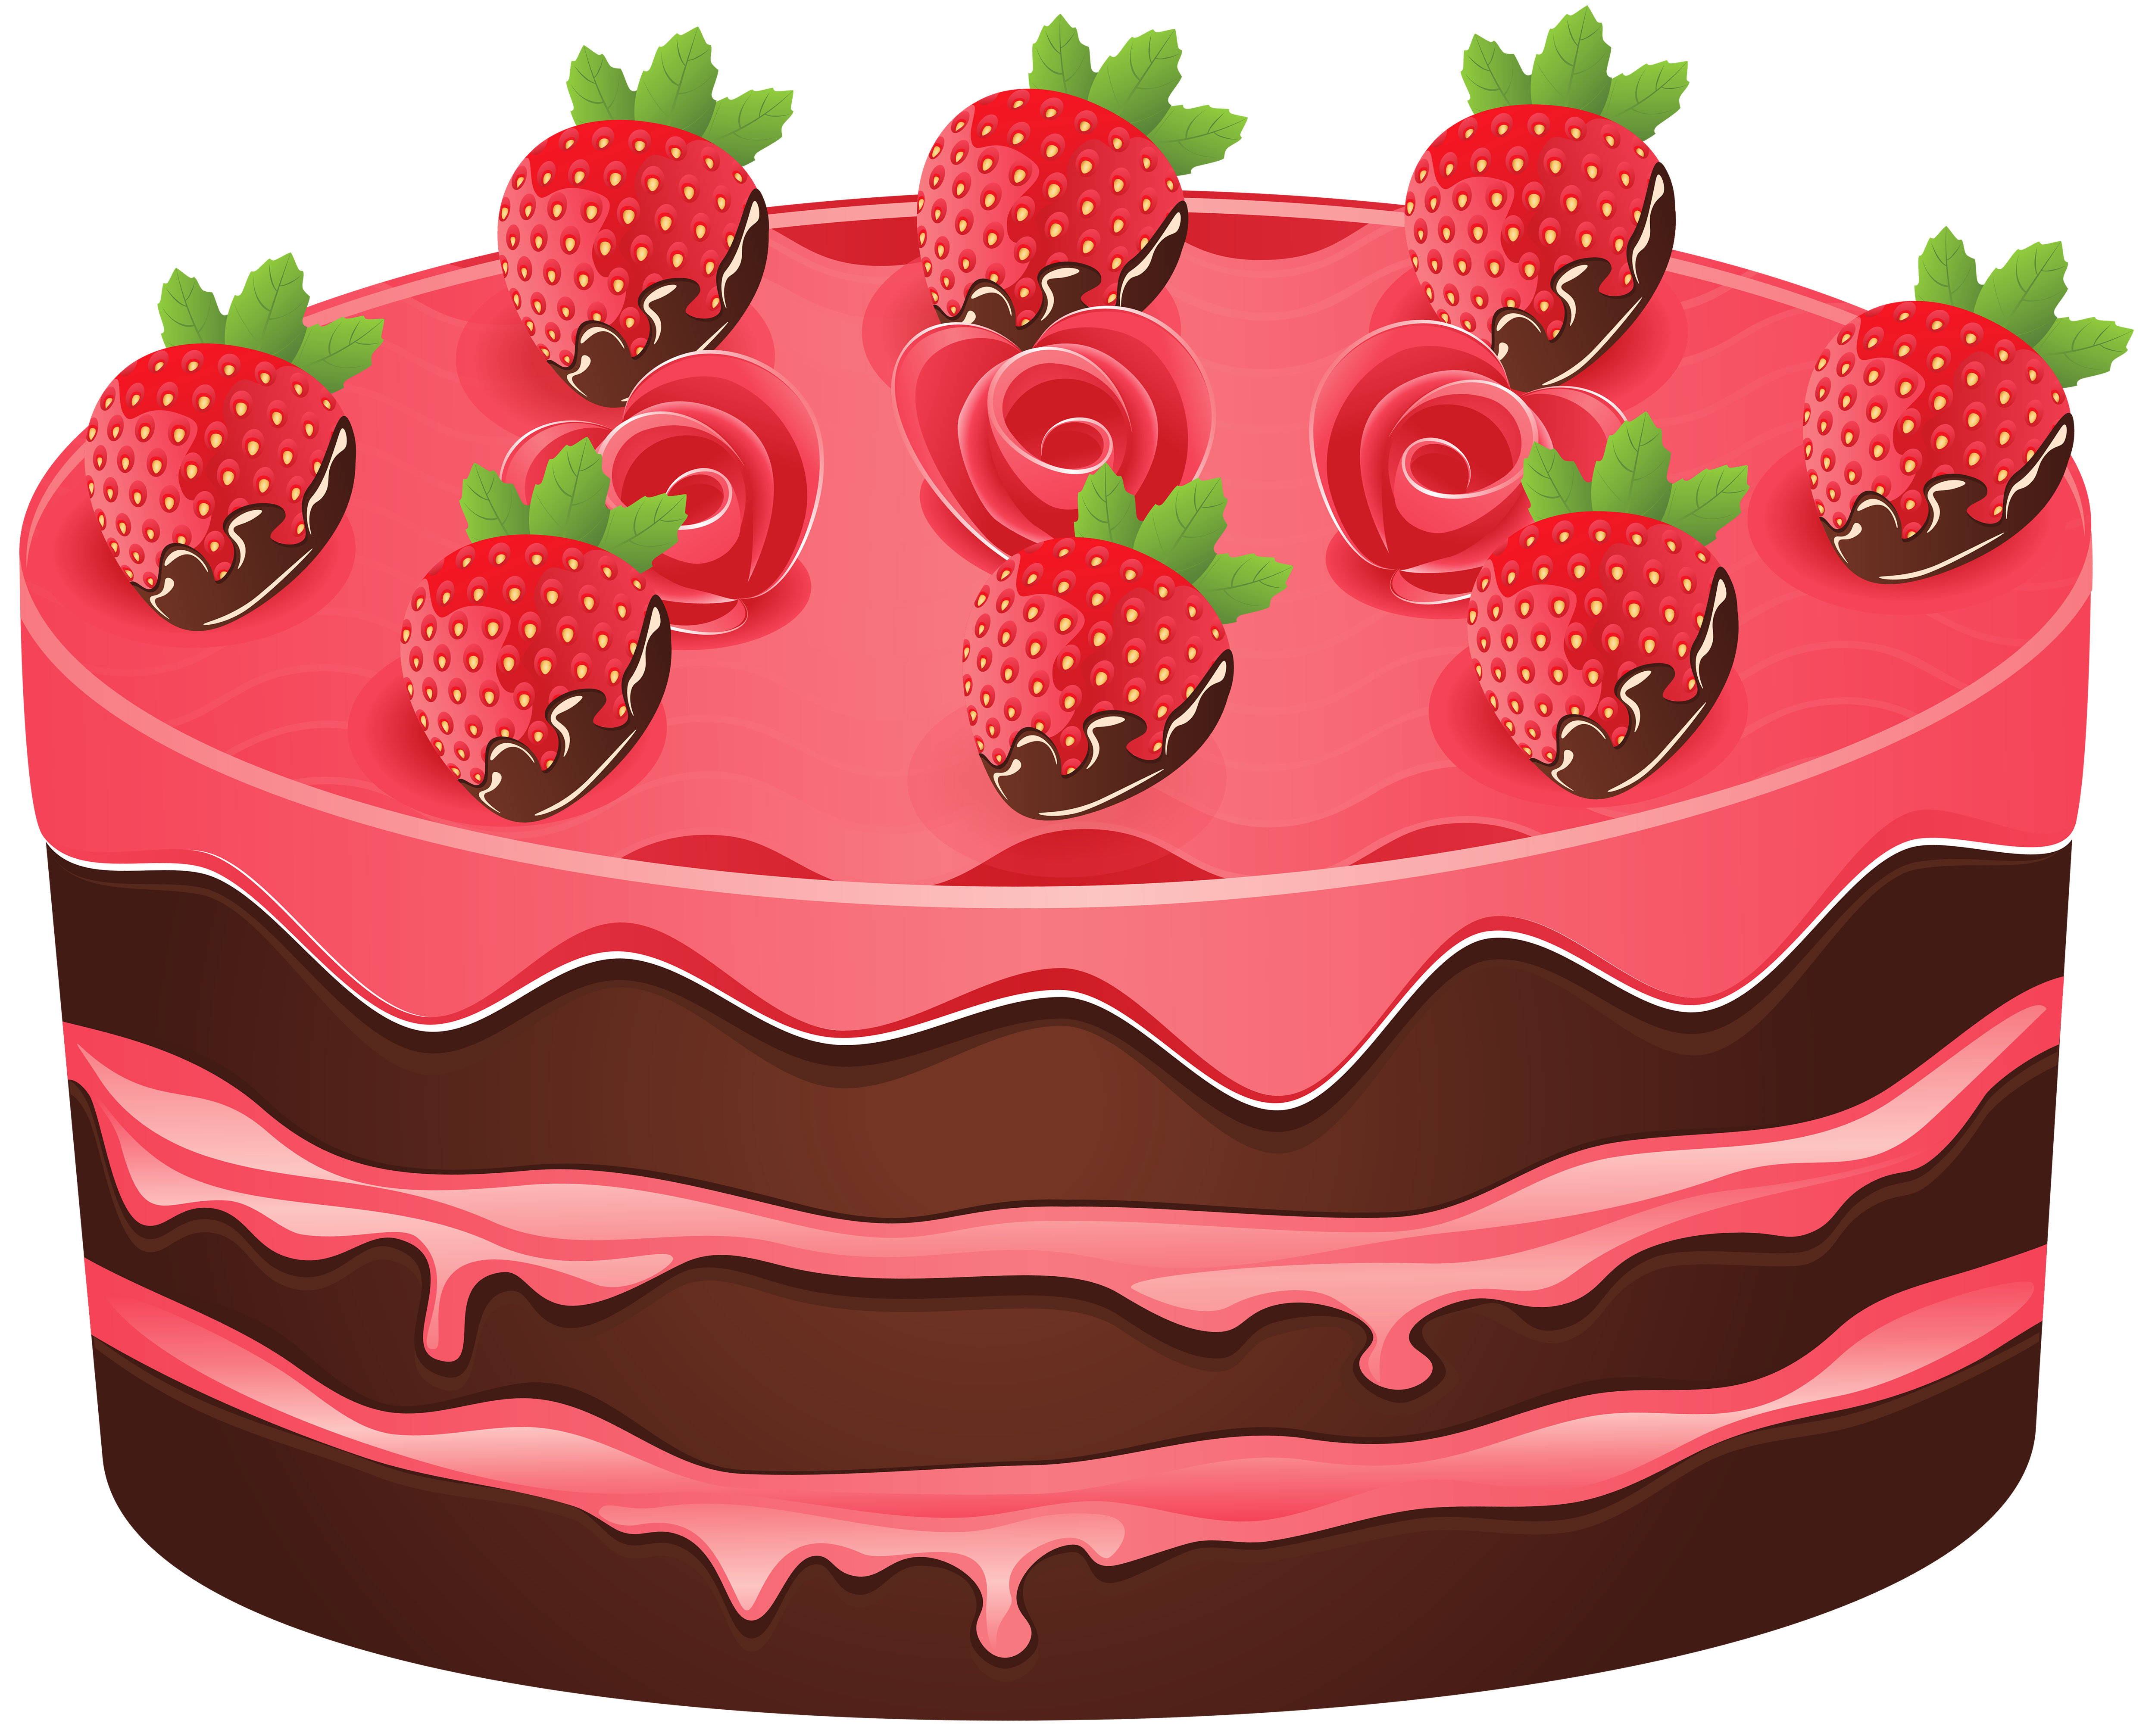 Clipart cake. Strawberry png image gallery